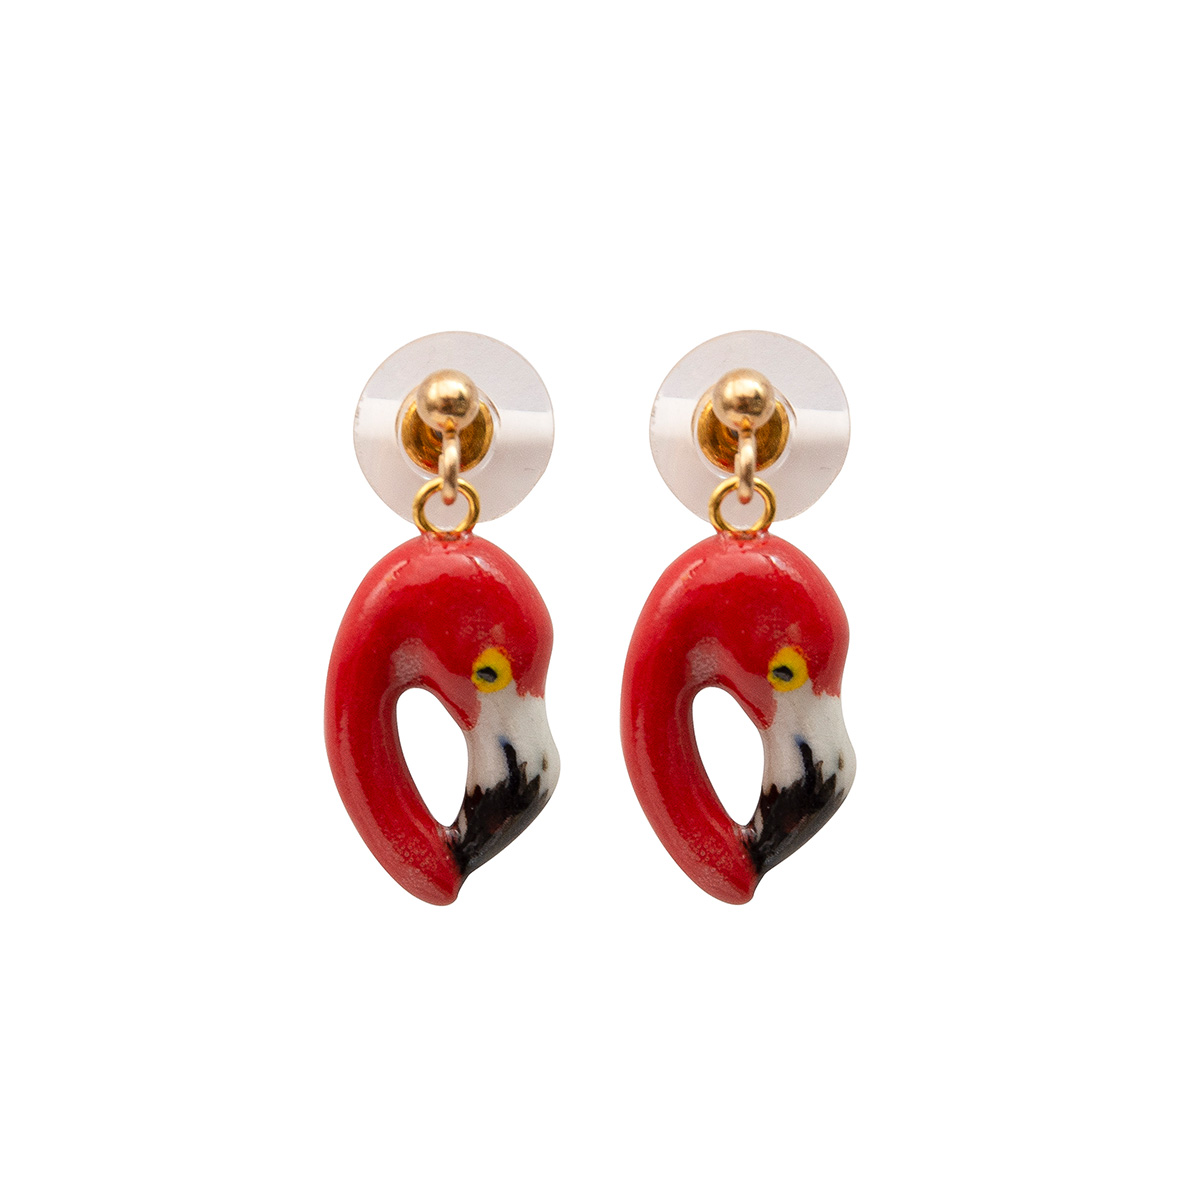 Hot pink flamingo stud earrings by And Mary